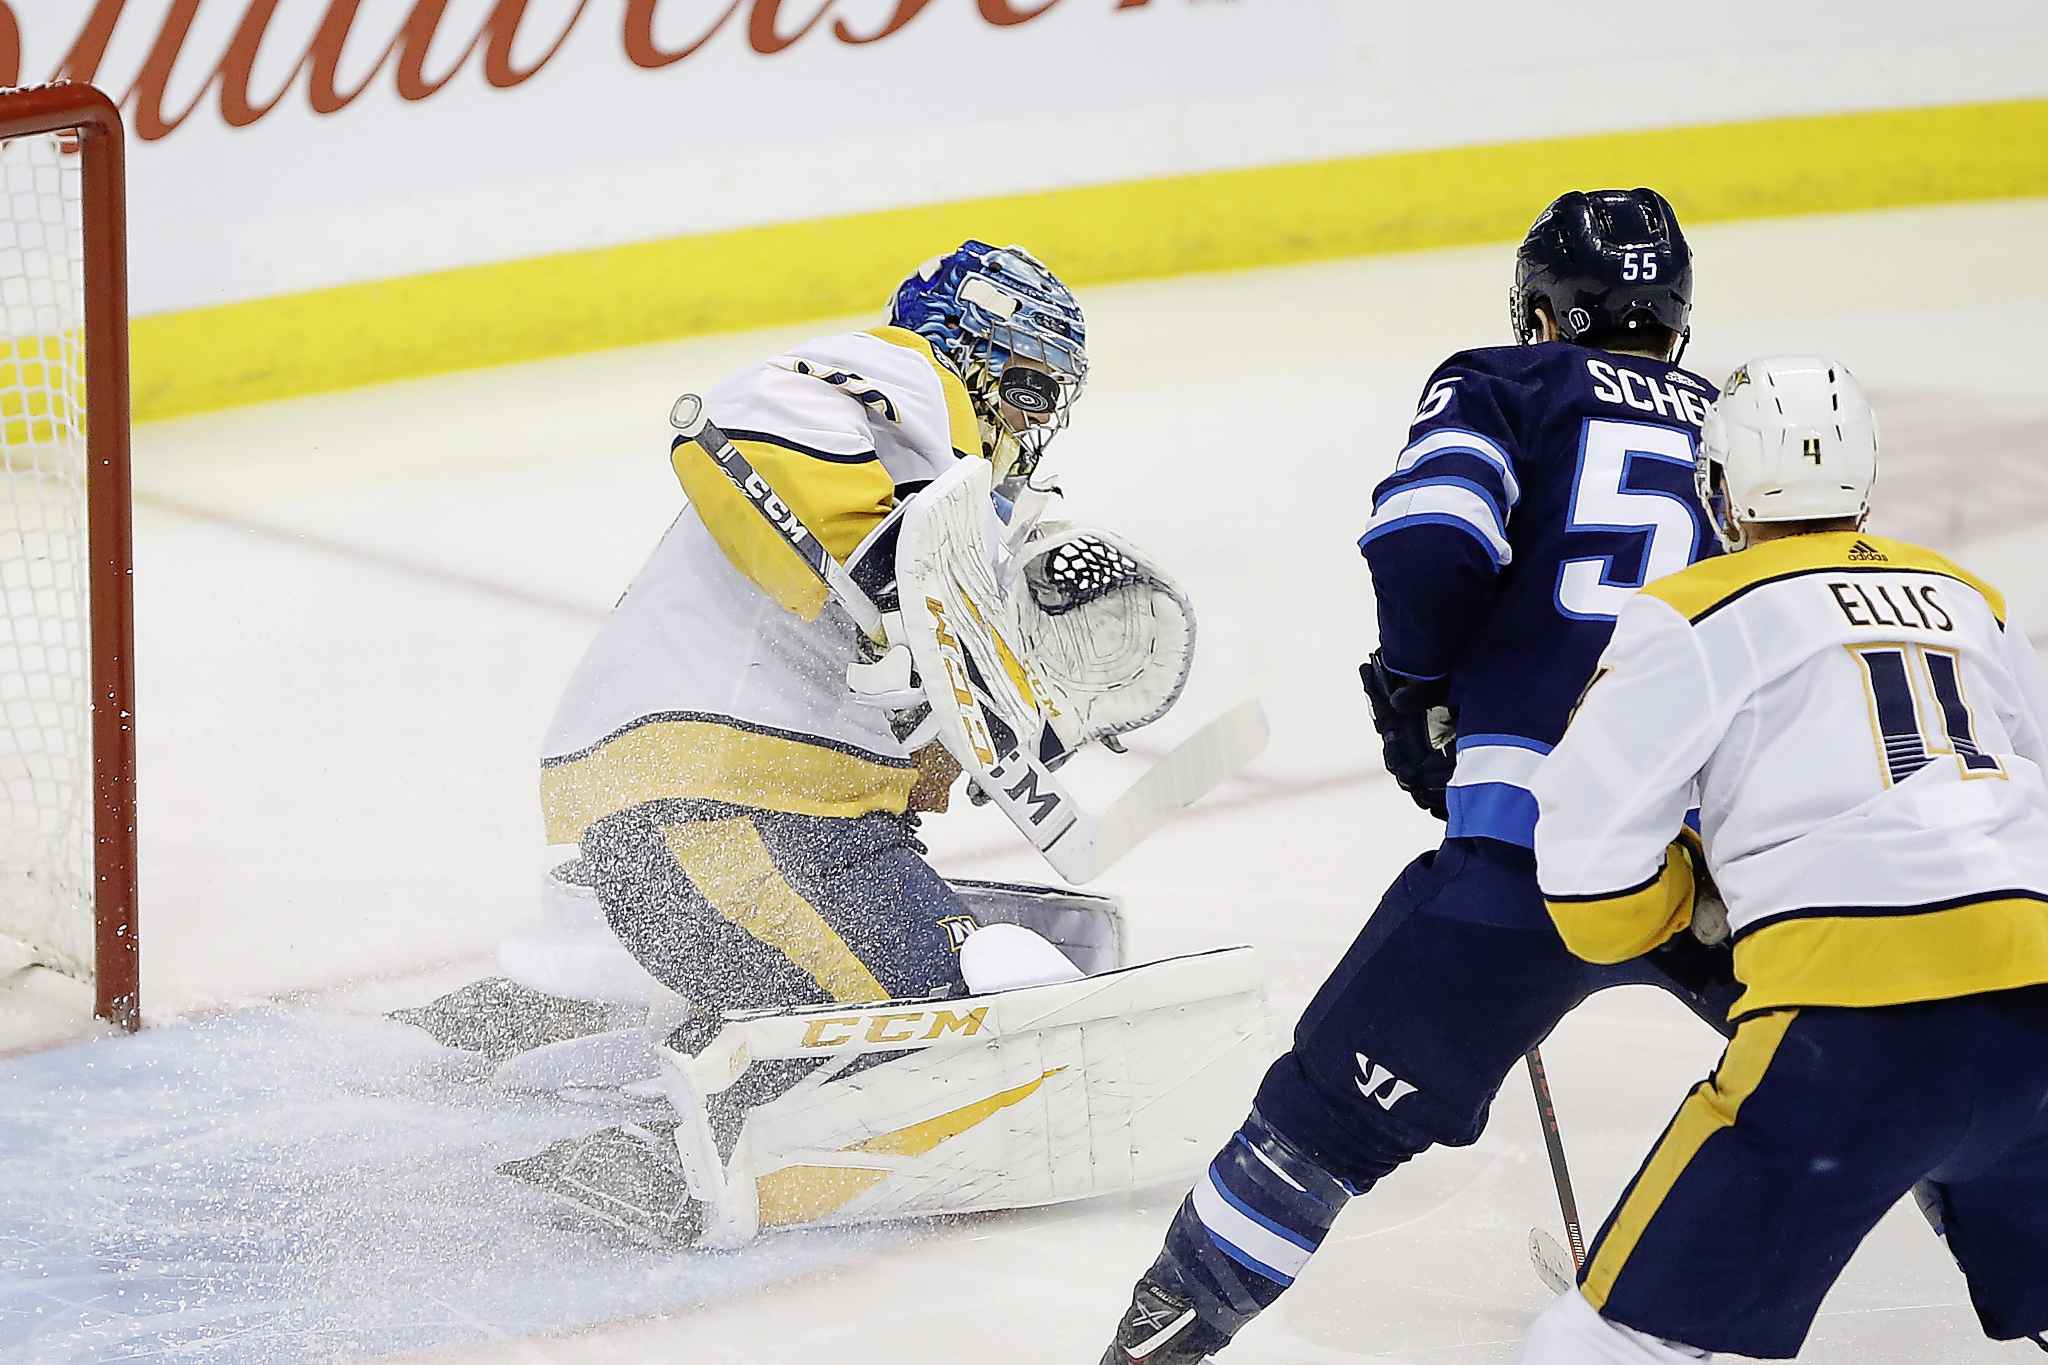 "JOHN WOODS / THE CANADIAN PRESS</p> <p>Winnipeg Jets' Mark Scheifele (55) looks for the rebound off of Nashville Predators goaltender Pekka Rinne's (35) mask as Ryan Ellis (4) defends during the first period.</p> <p>""></a><figcaption readability="